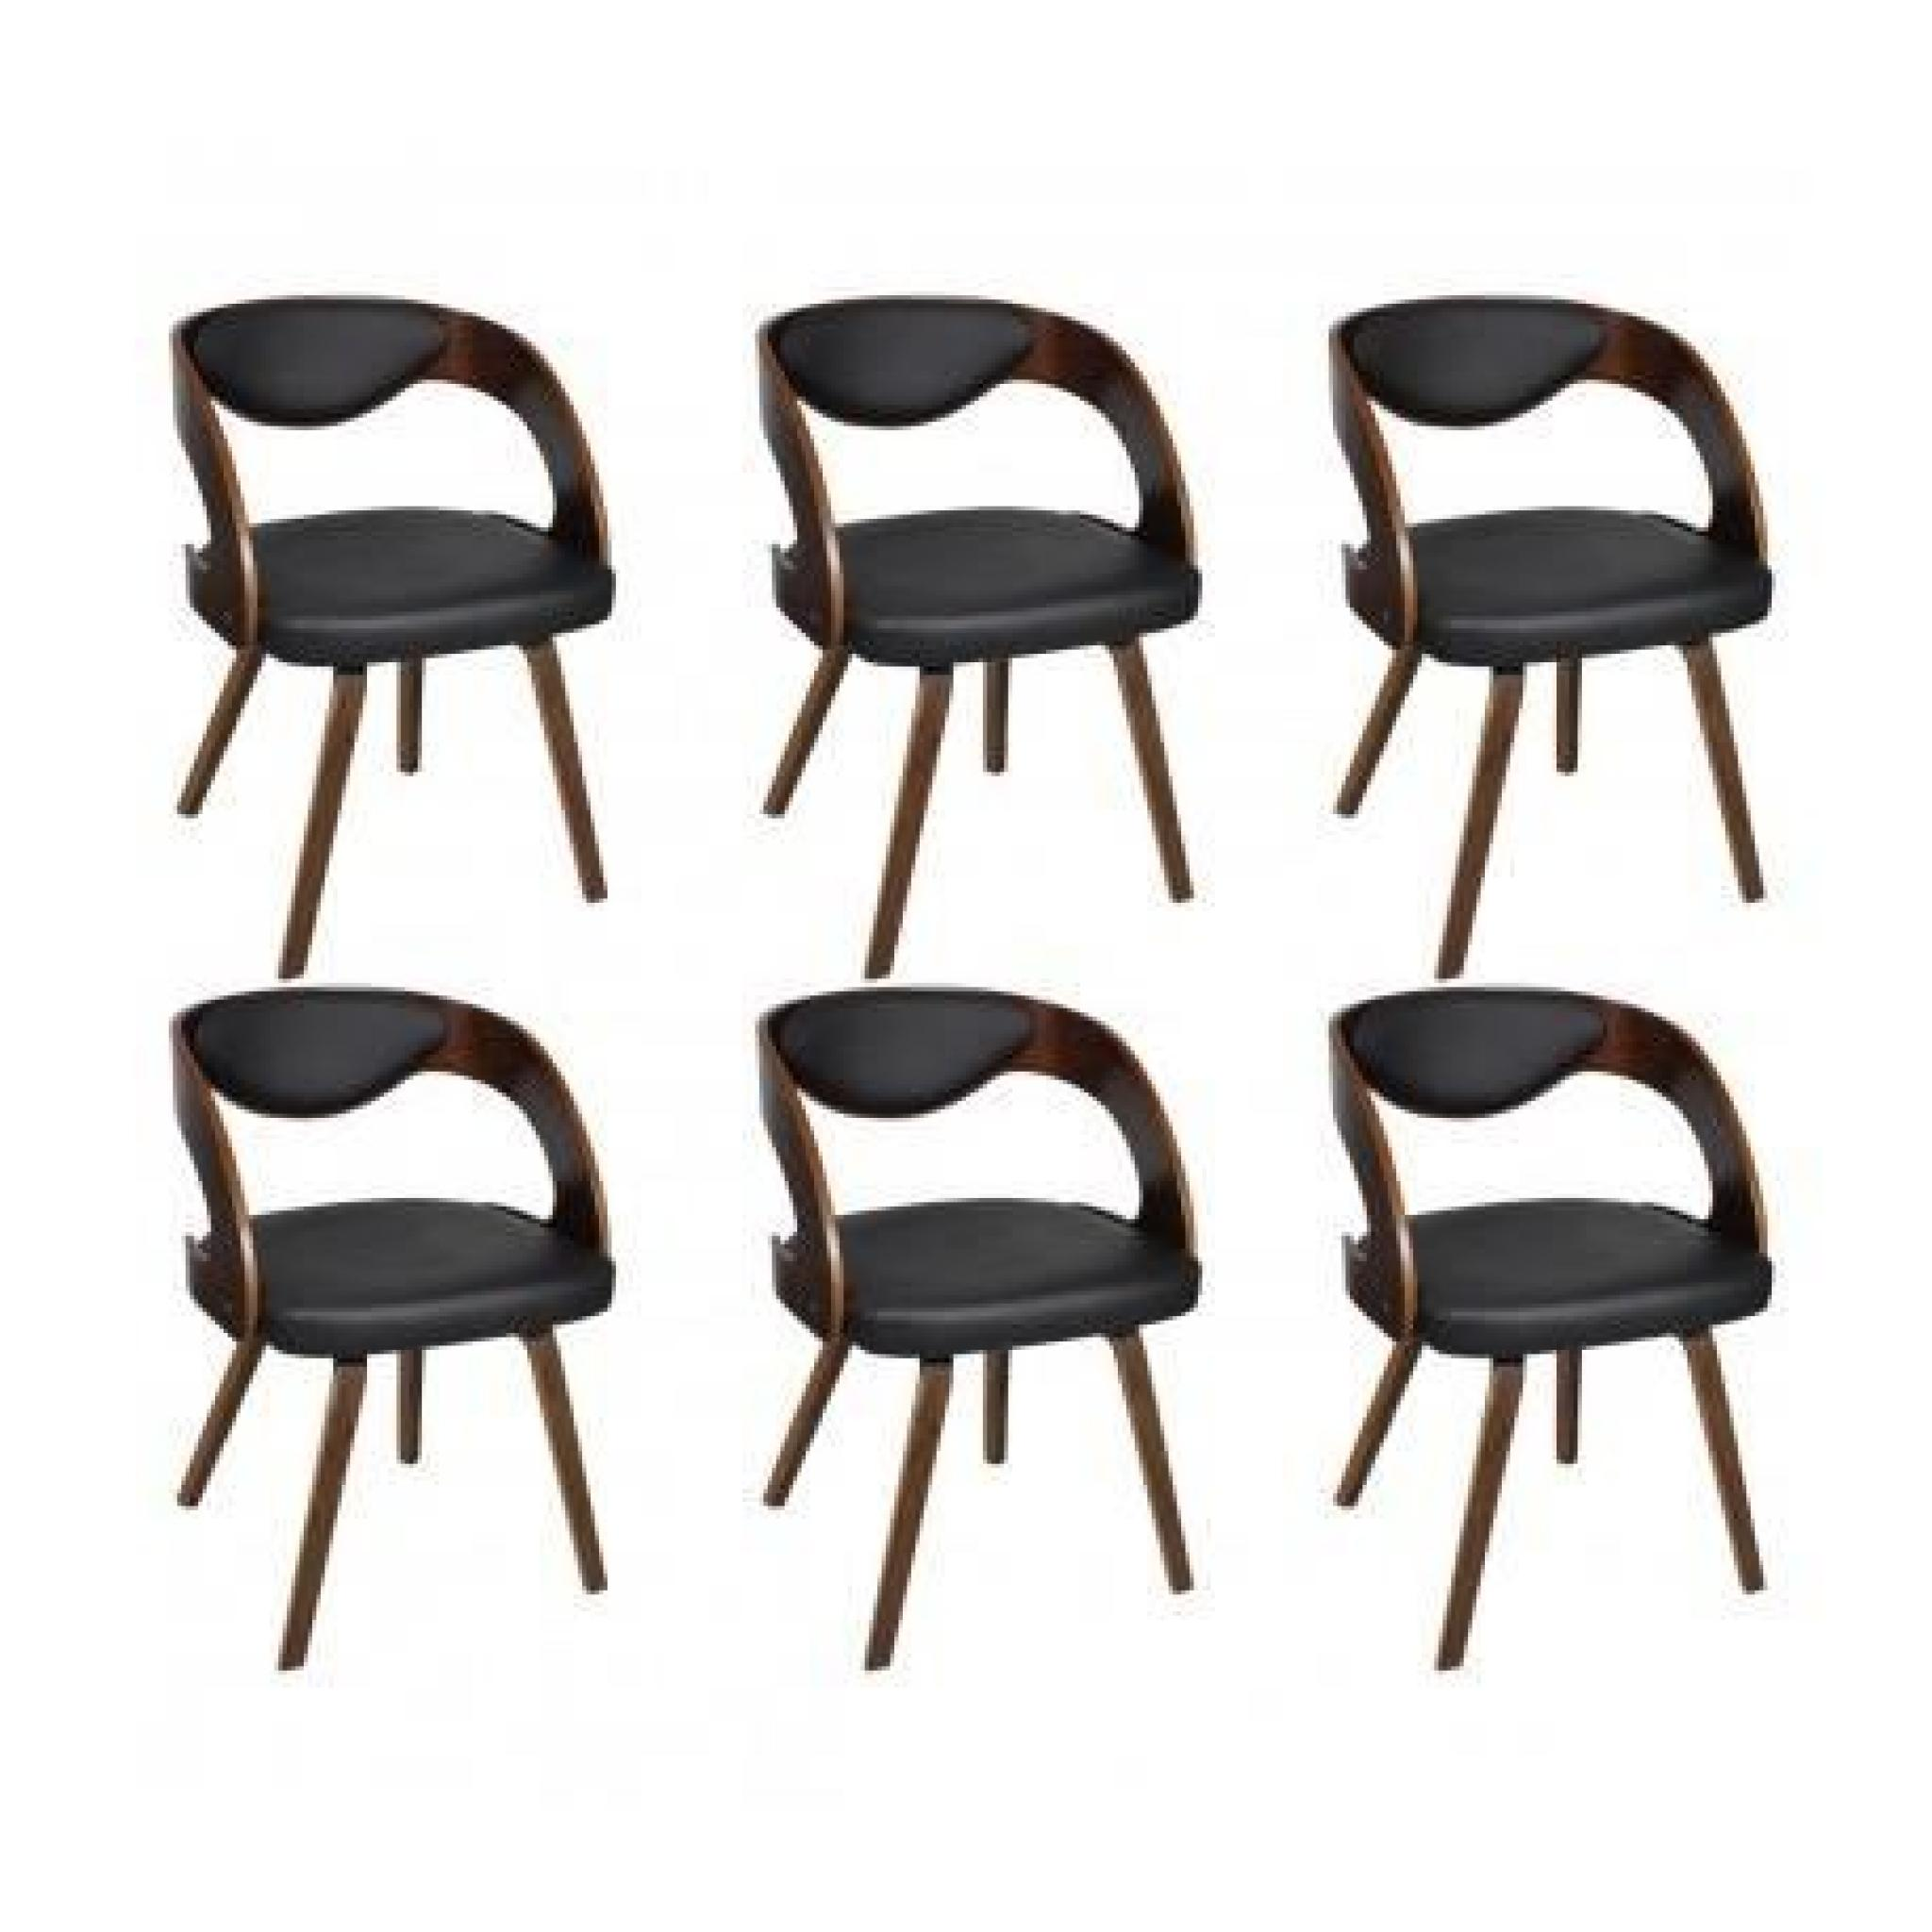 Chaises design de salon salle manger marron x4 maja for Salon a manger pas cher